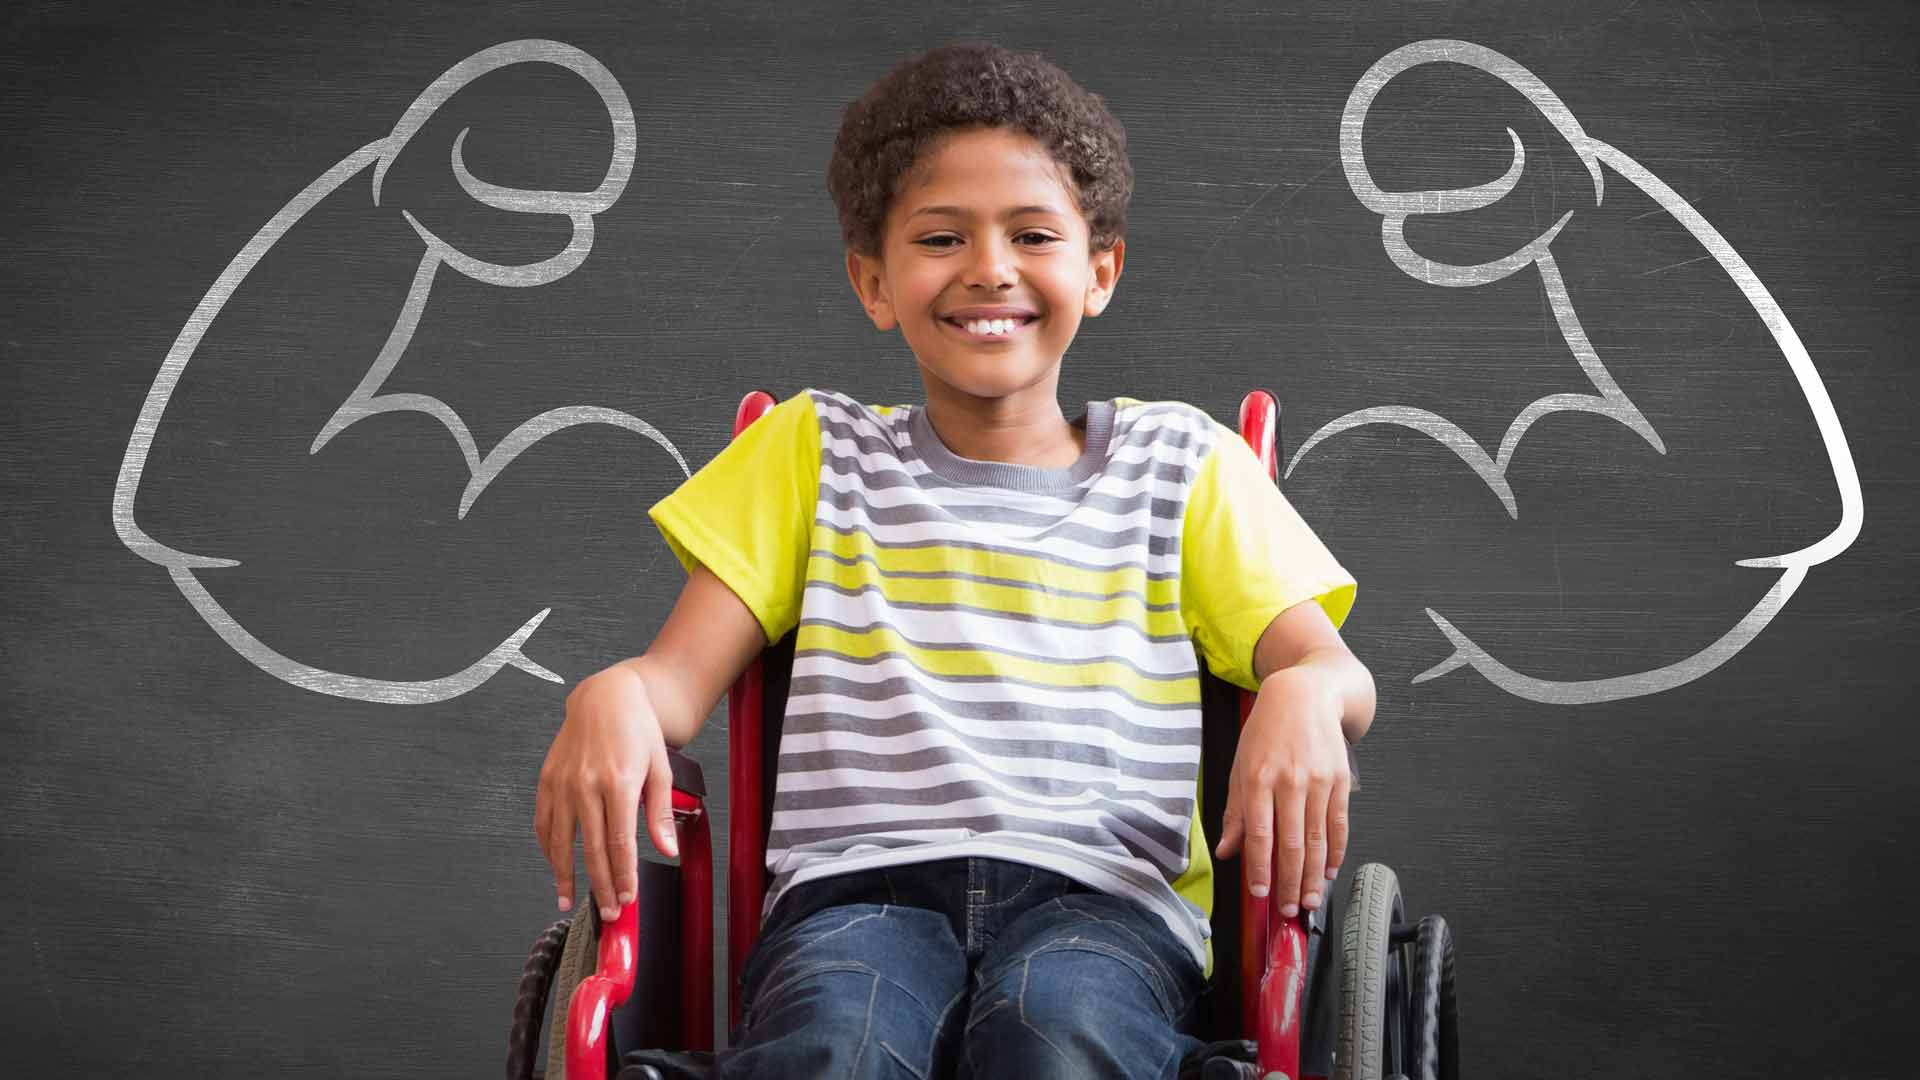 Do Children With Disabilities Suffer?